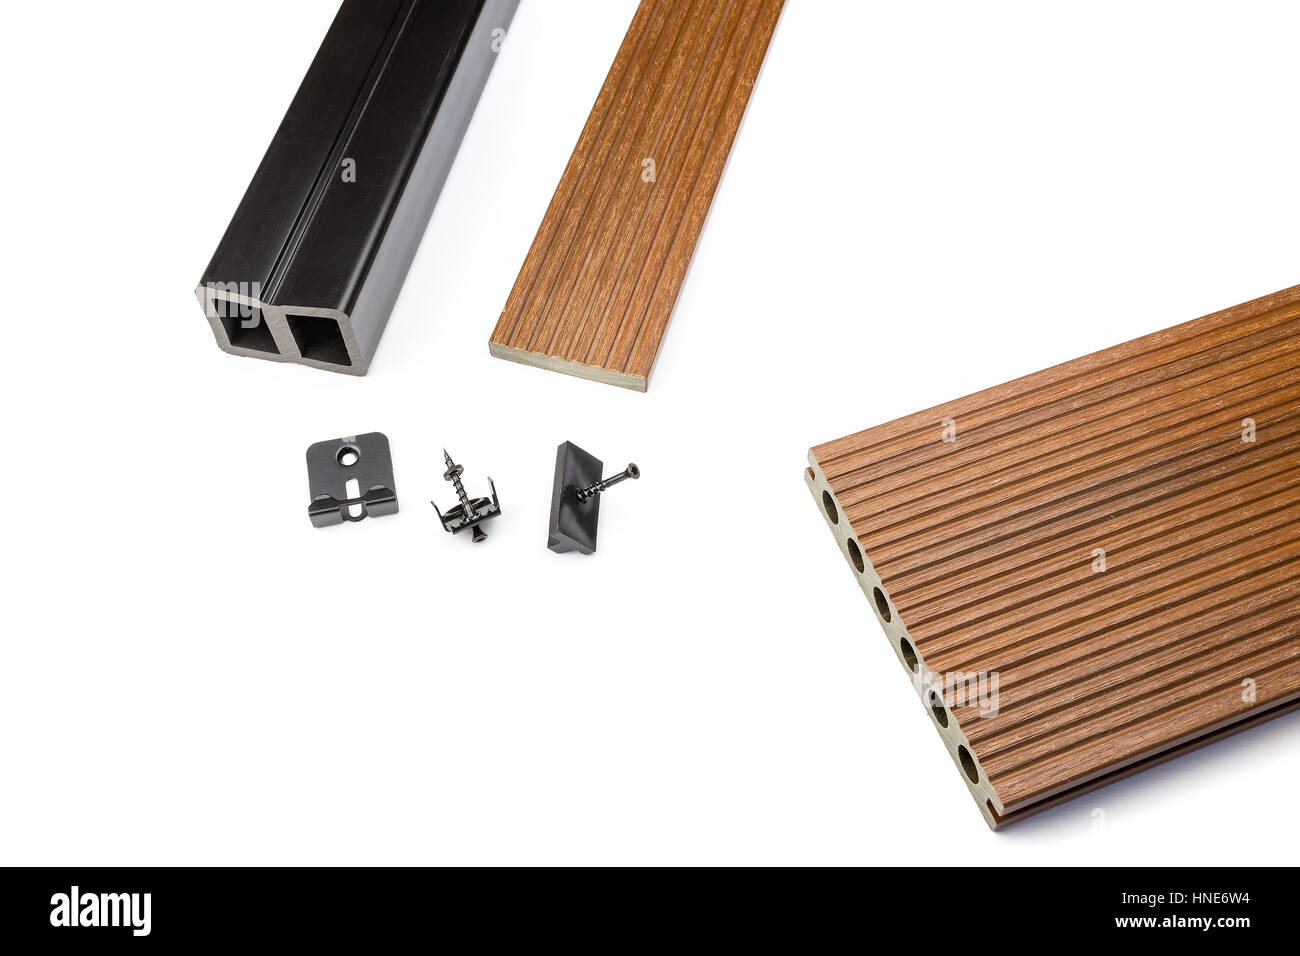 Brown composite decking plank with fastening material on white background - Stock Image